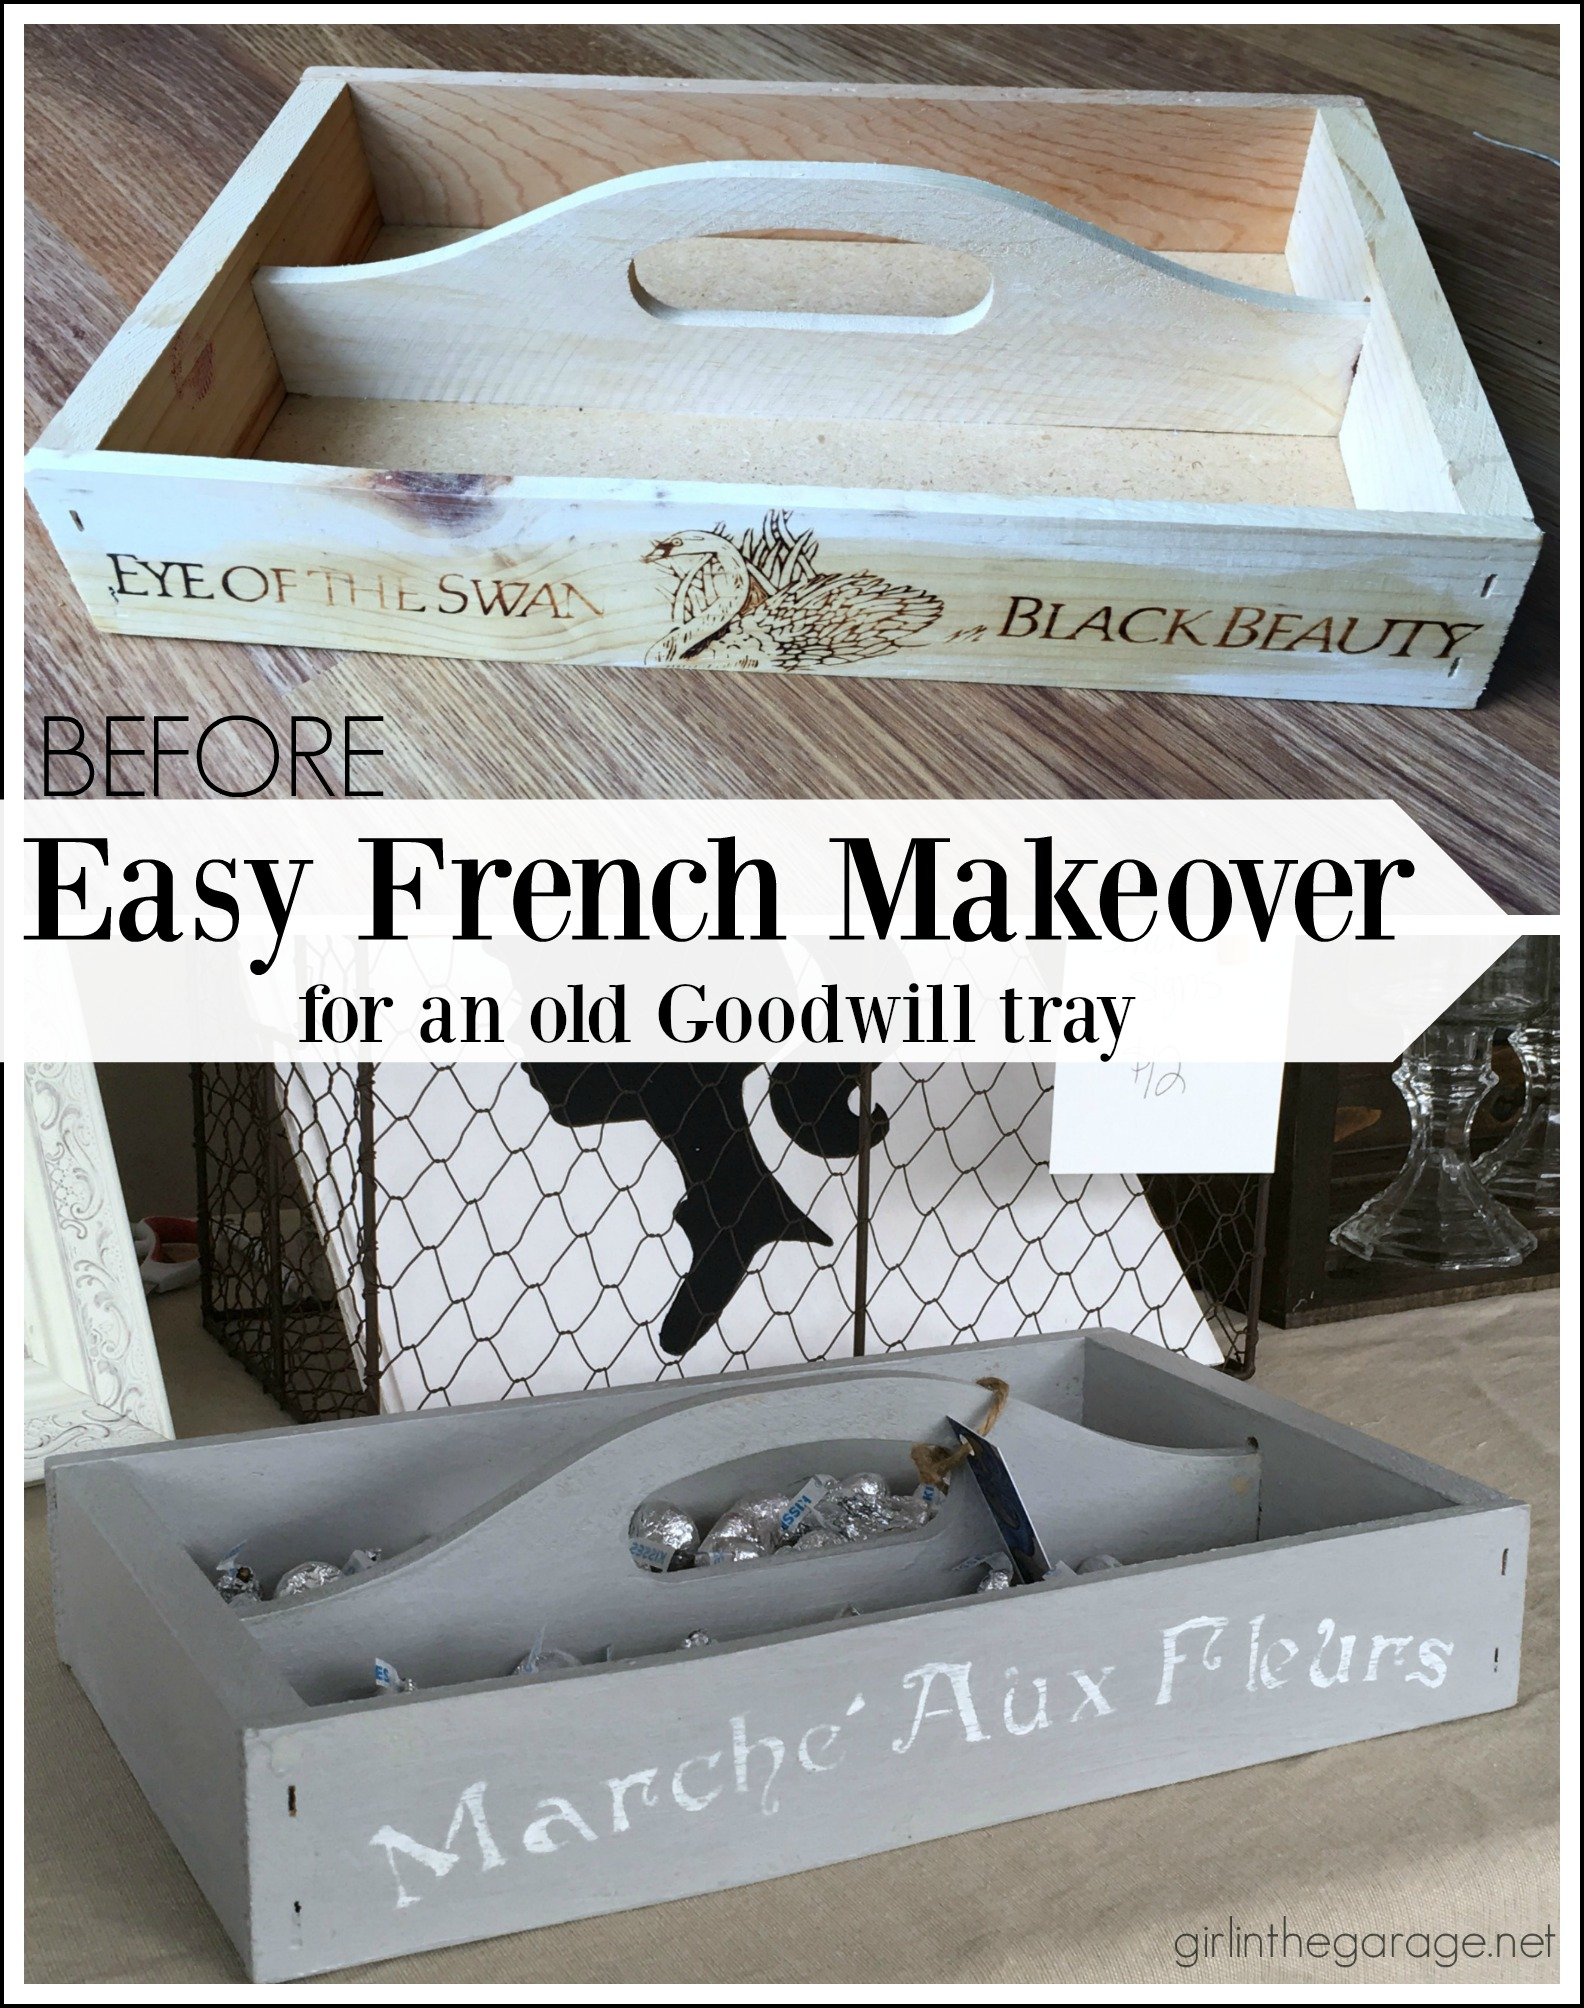 Goodwill wood tray gets a French makeover - by Girl in the Garage